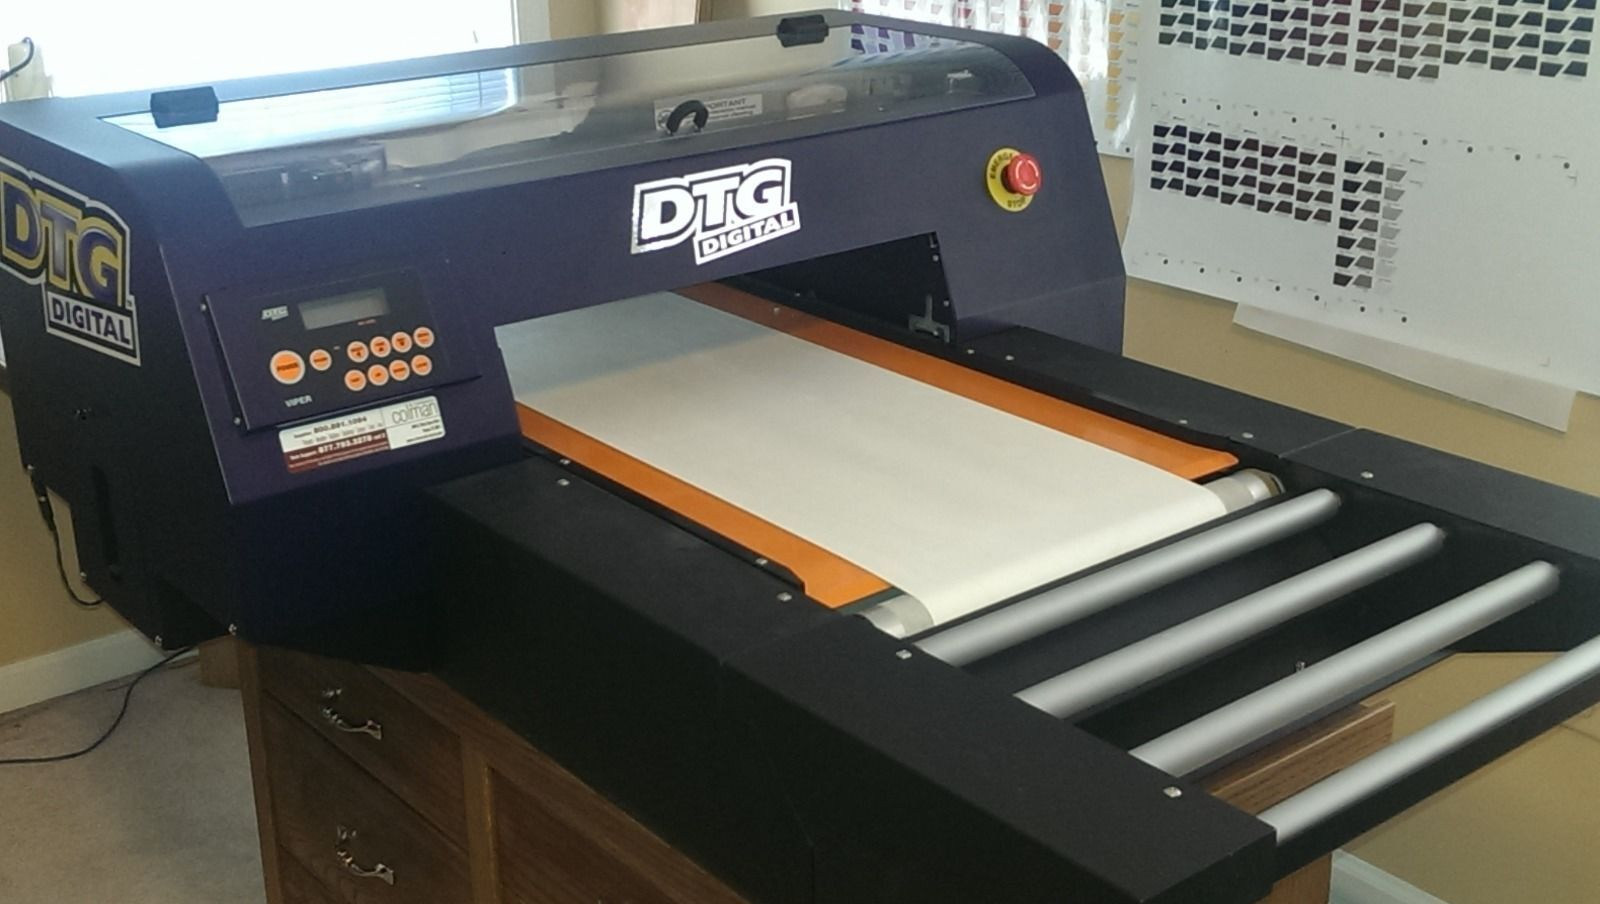 Design your own t shirt digital printing - How To Build A Direct To Garment Printer